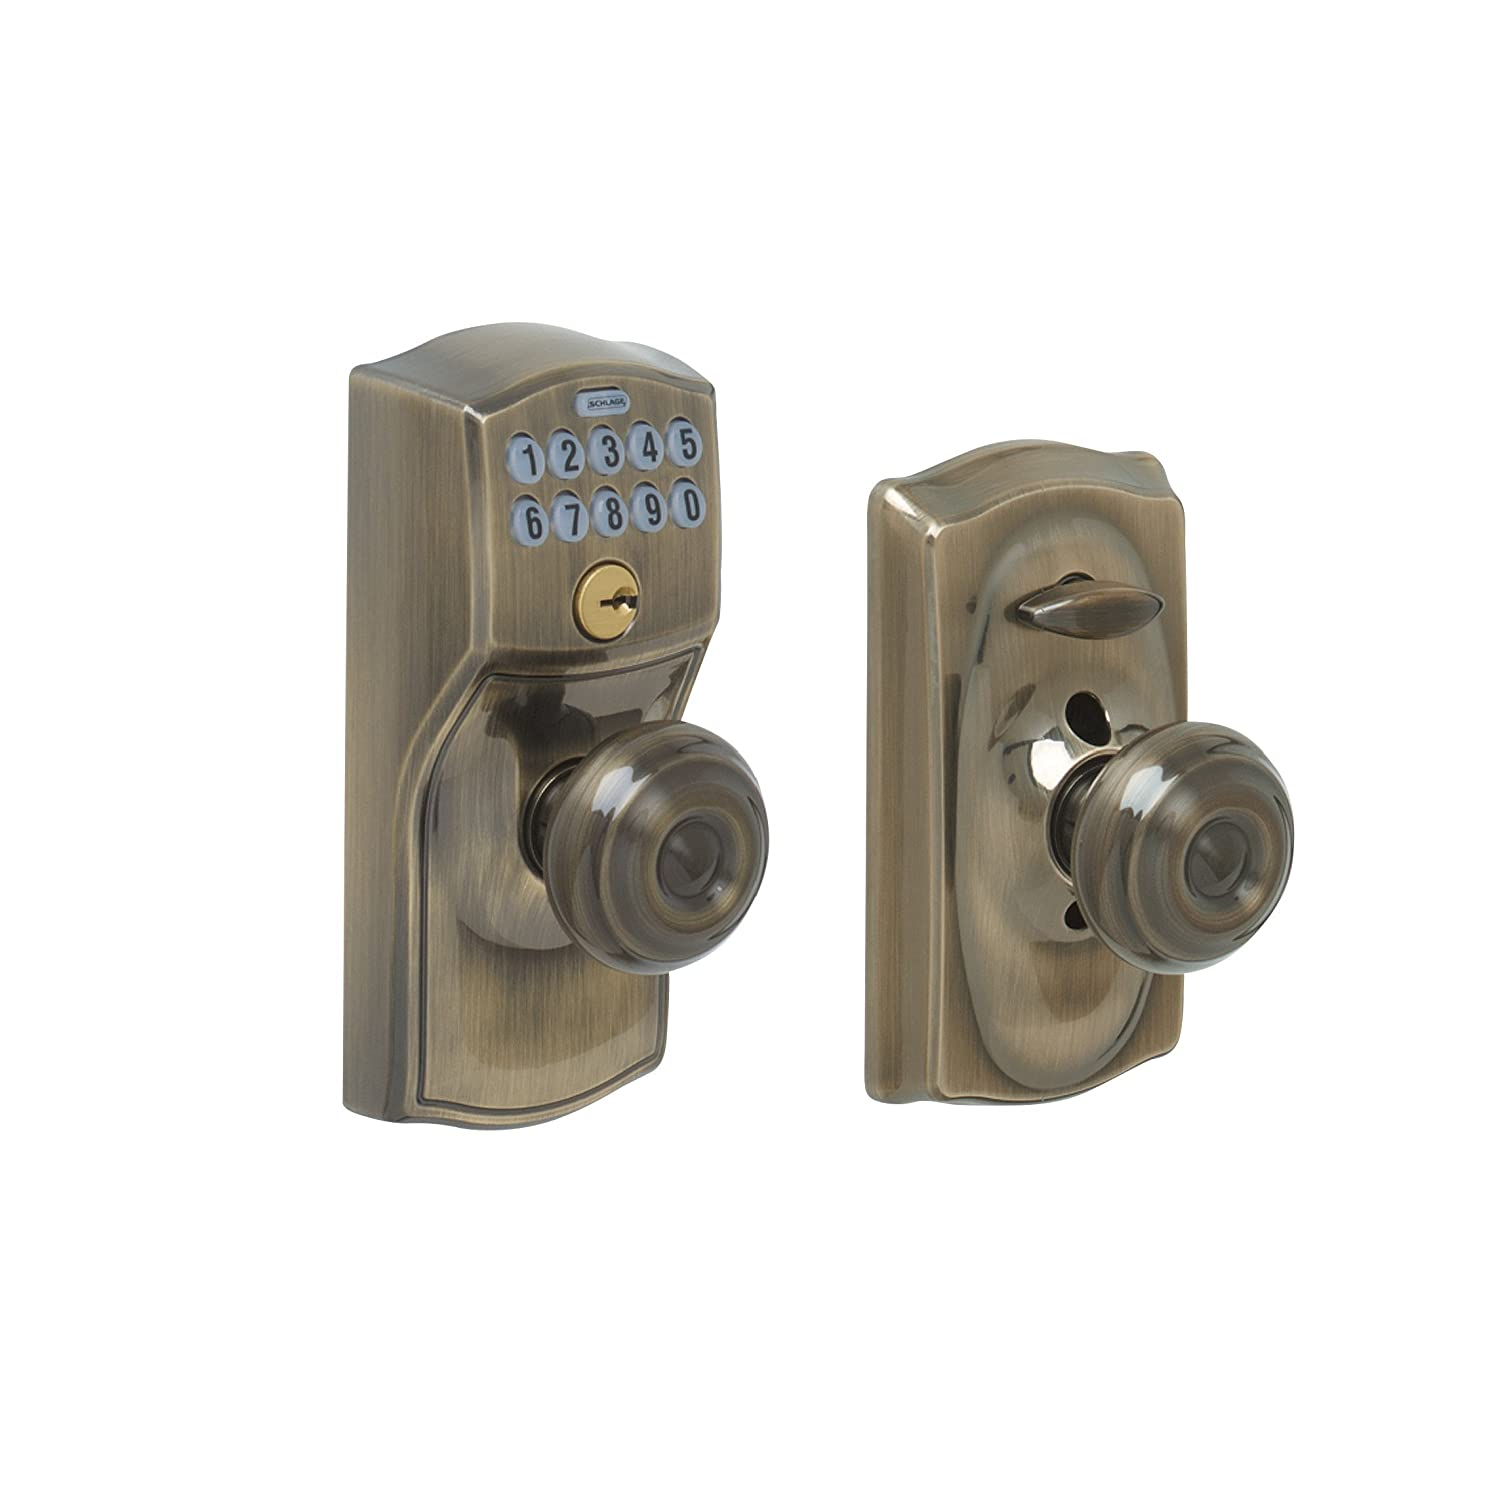 hardware home doors traditional styles style modern en door lever backplates schlage flair knob